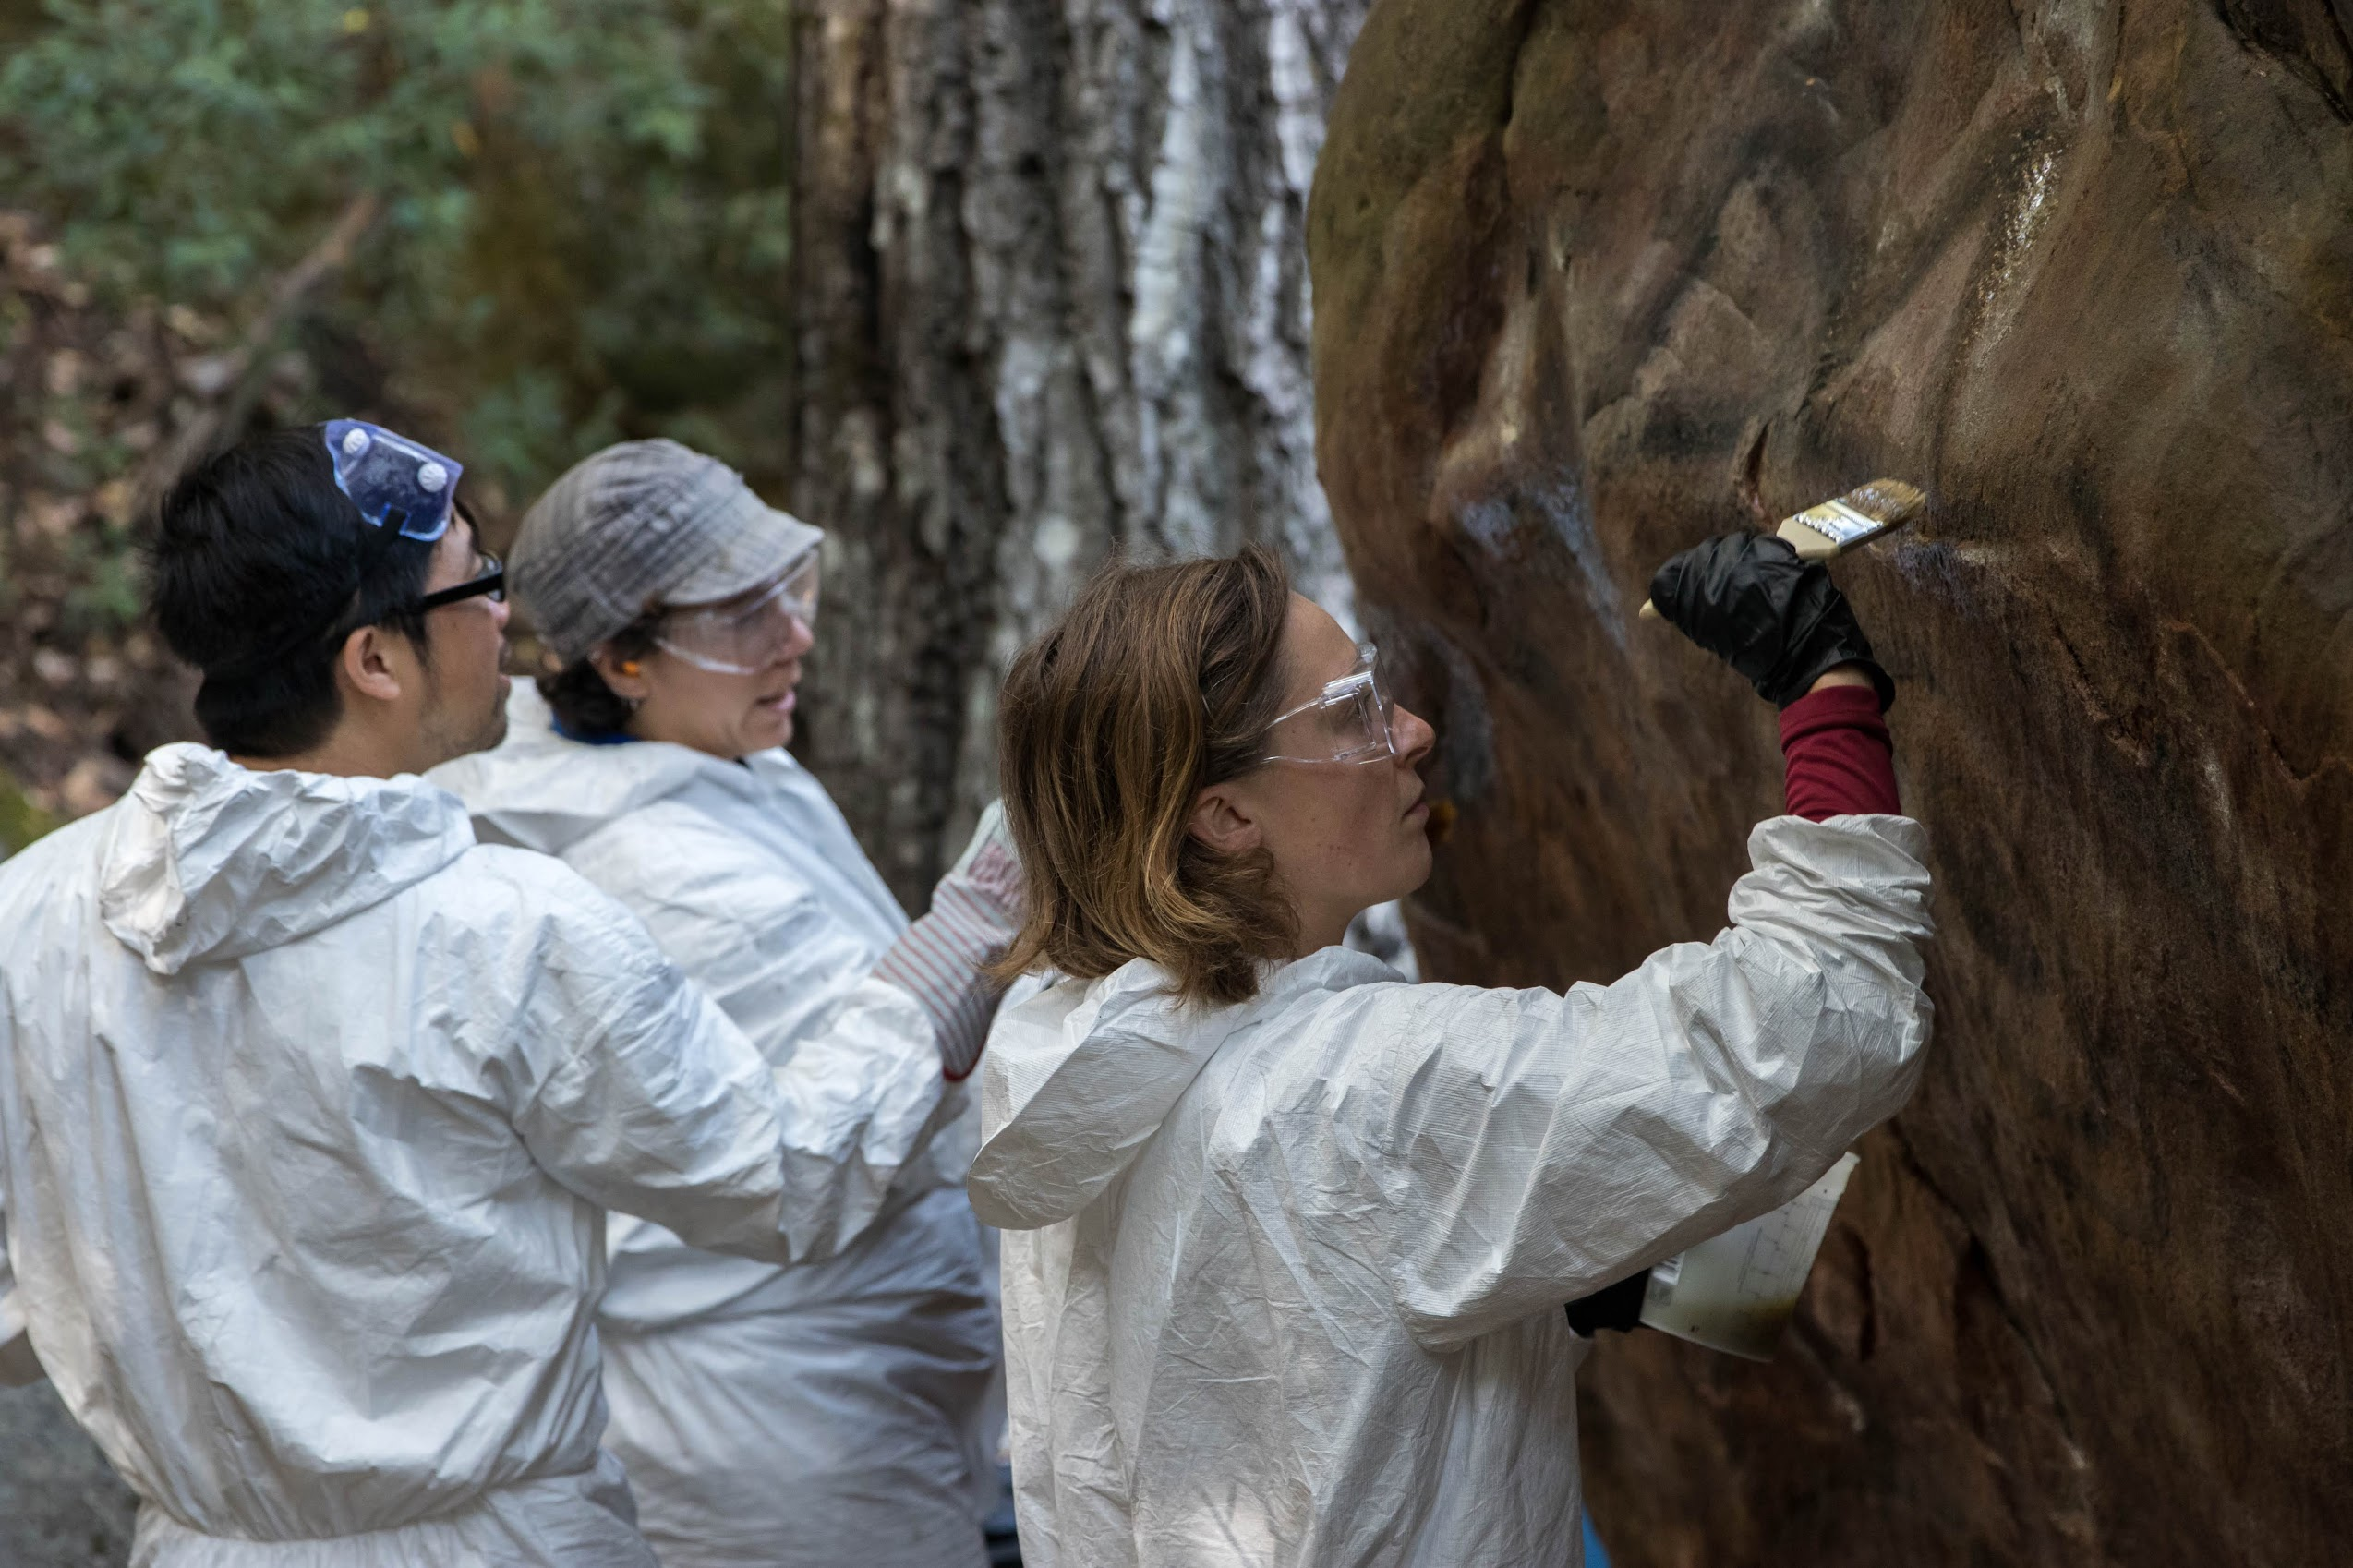 a woman in the foreground applies paint remover with a brush, while two participants discuss the removal process in the background